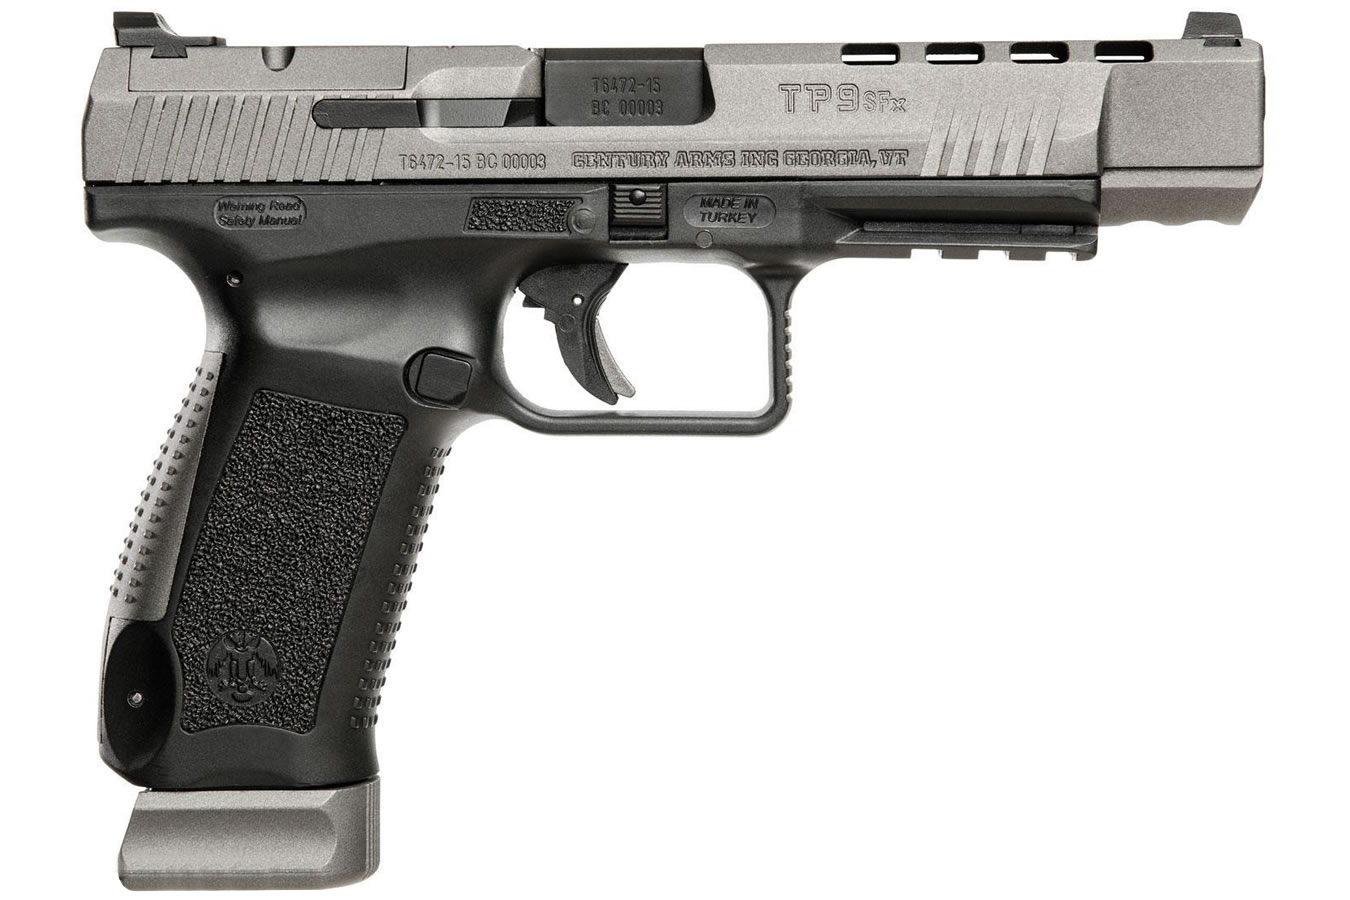 No. 20 Best Selling: CENTURY ARMS CANIK TP9SFX 9MM WITH 20 ROUND MAGAZINE